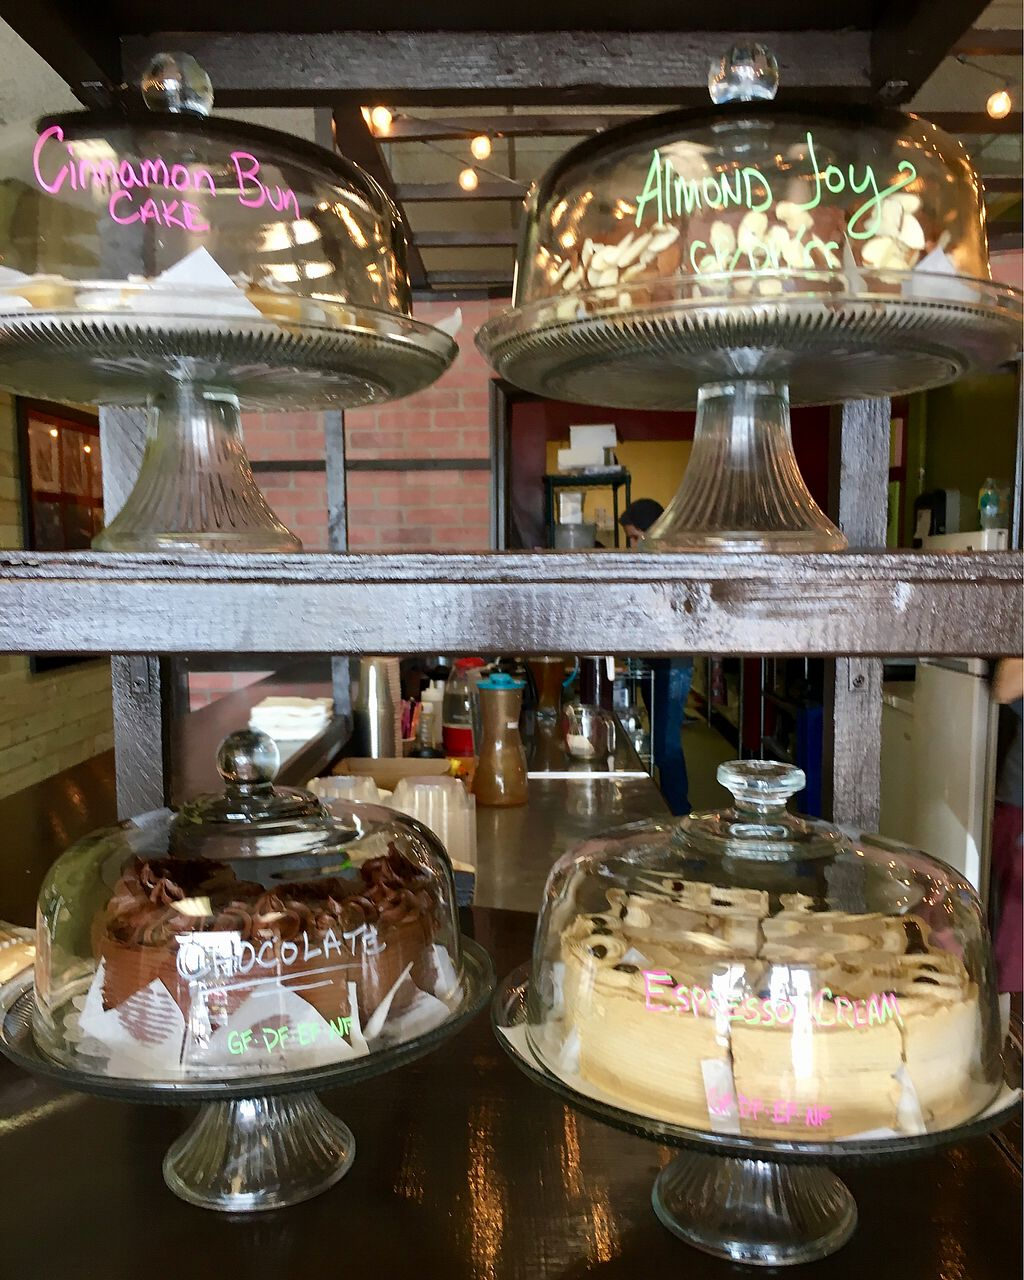 "Photo of The Bald Strawberry Cafe  by <a href=""/members/profile/clovely.vegan"">clovely.vegan</a> <br/>cake display <br/> August 18, 2017  - <a href='/contact/abuse/image/39195/294062'>Report</a>"